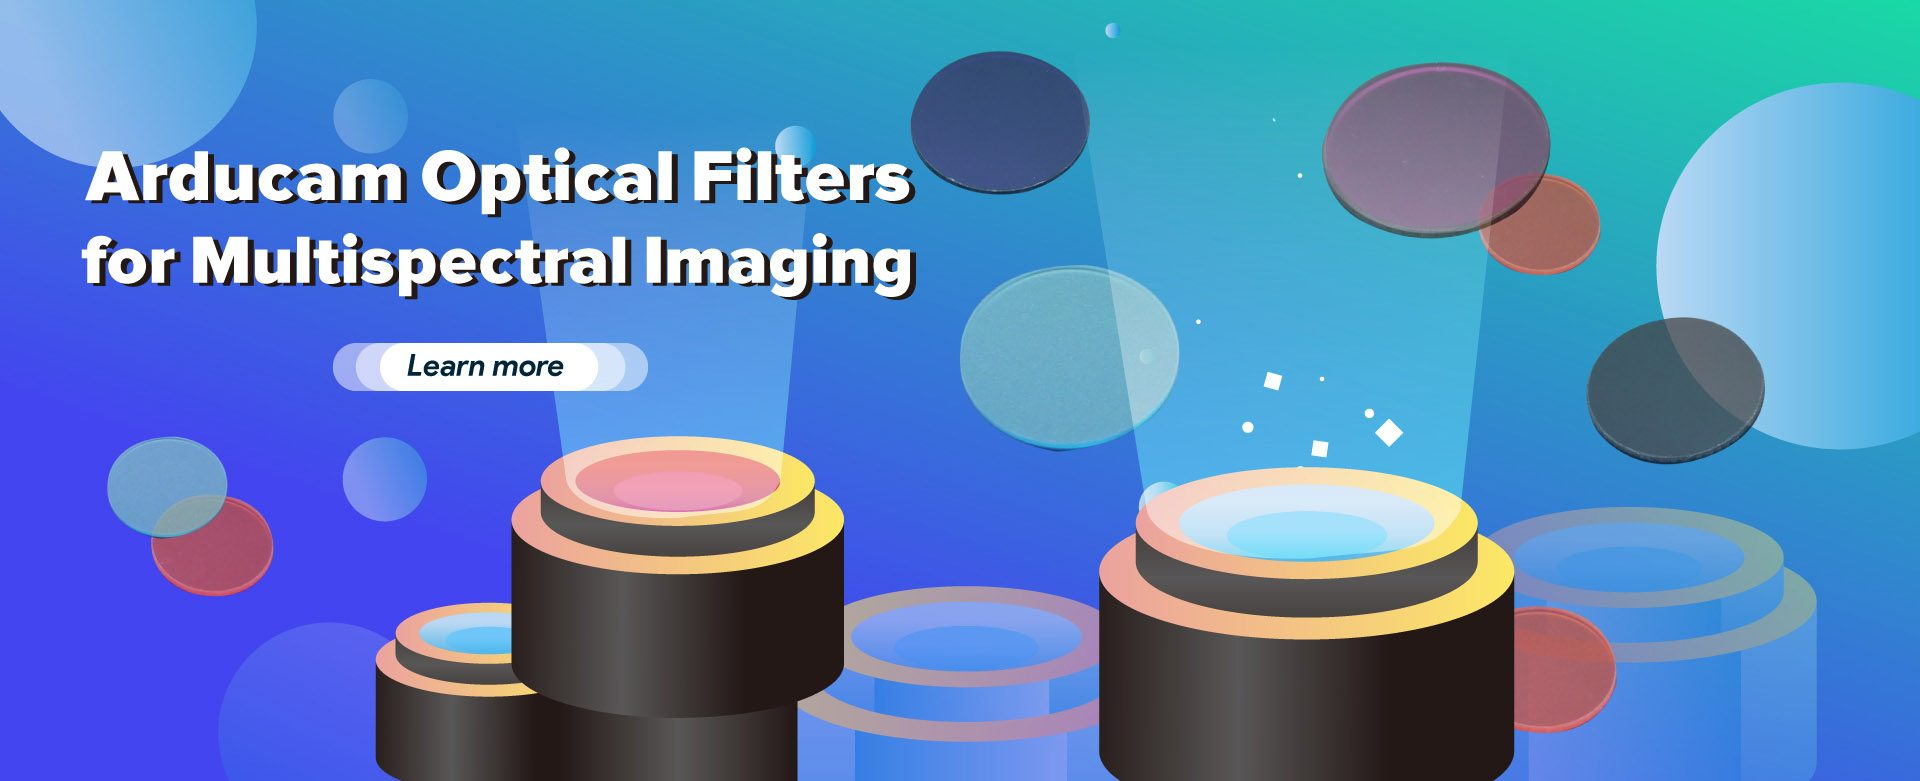 arducam optical filters for multispectral imaging